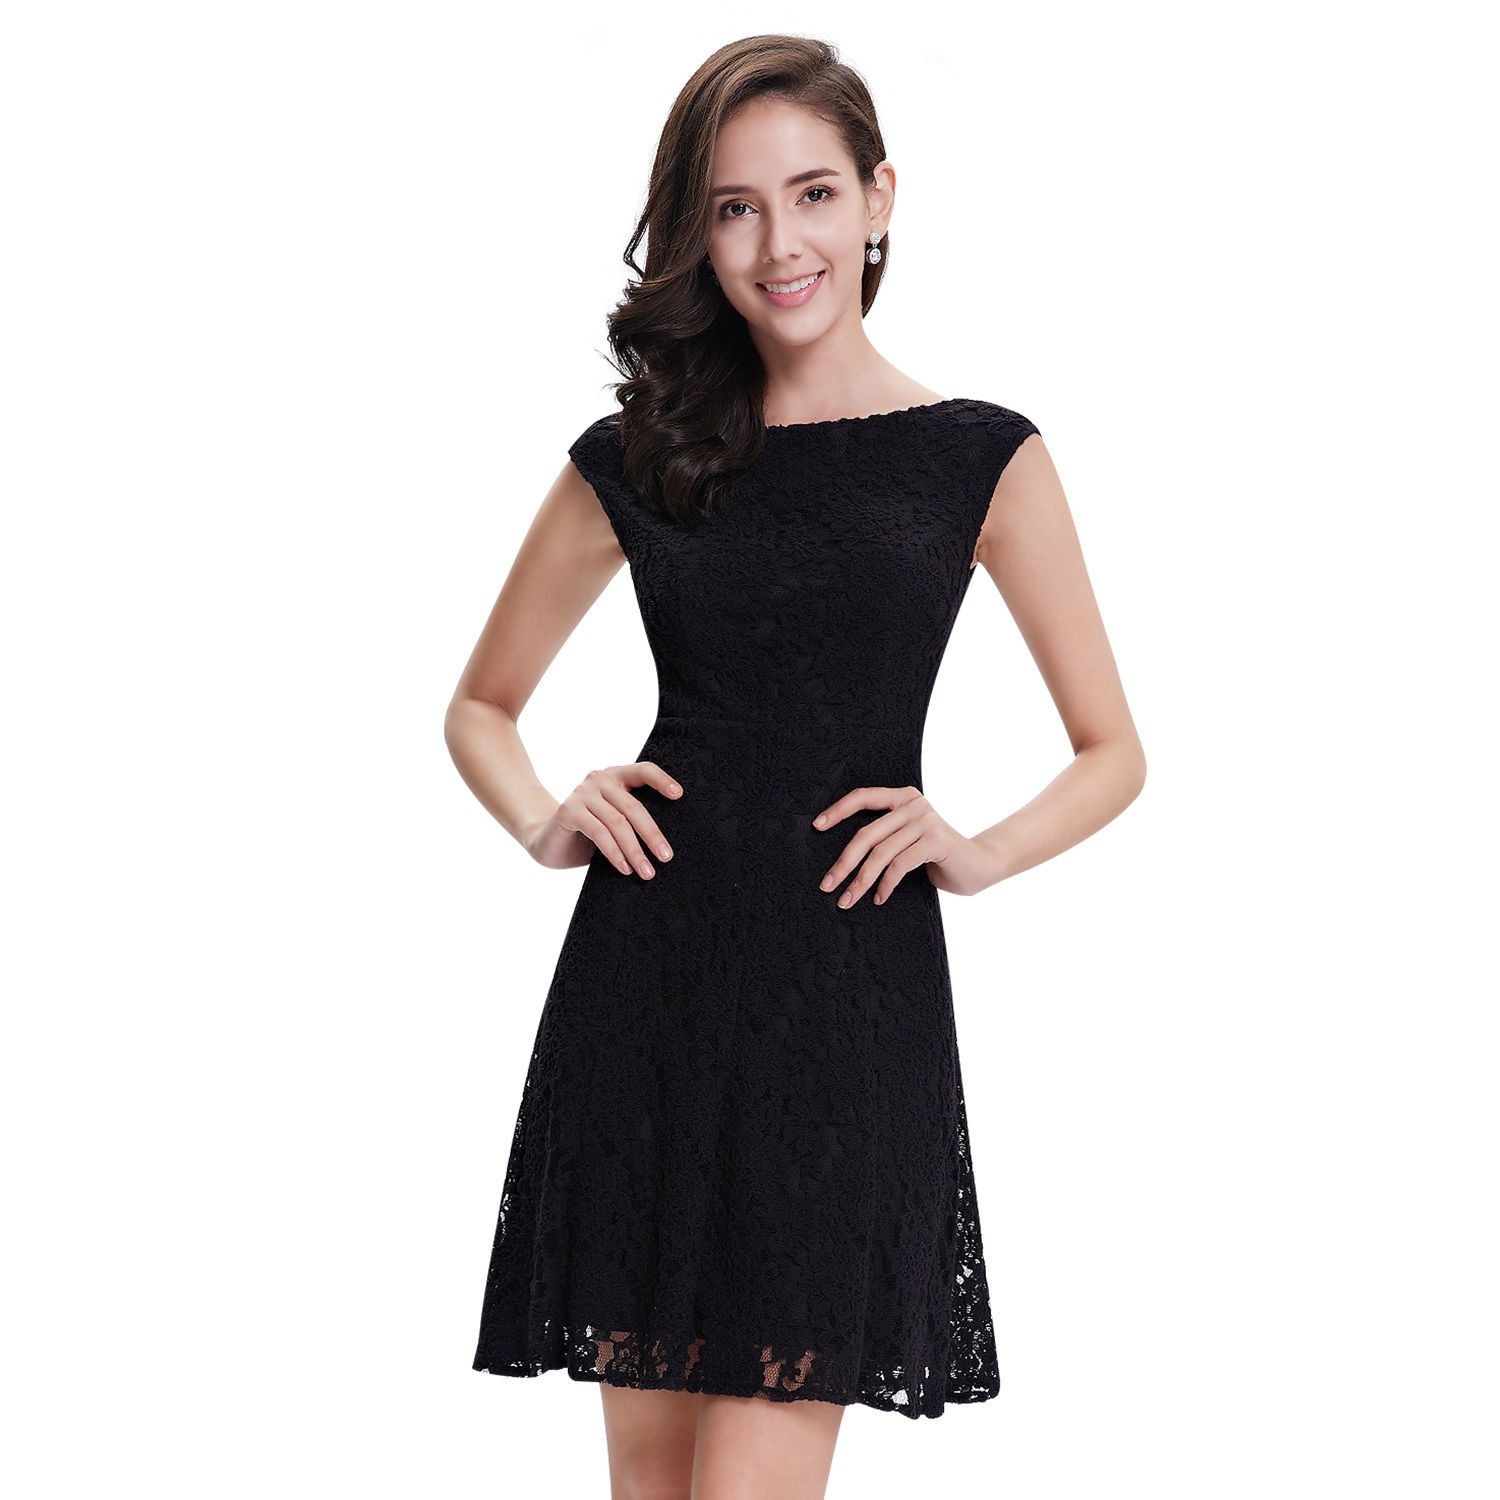 Awesome sleeveless lace casual evening party cocktail short